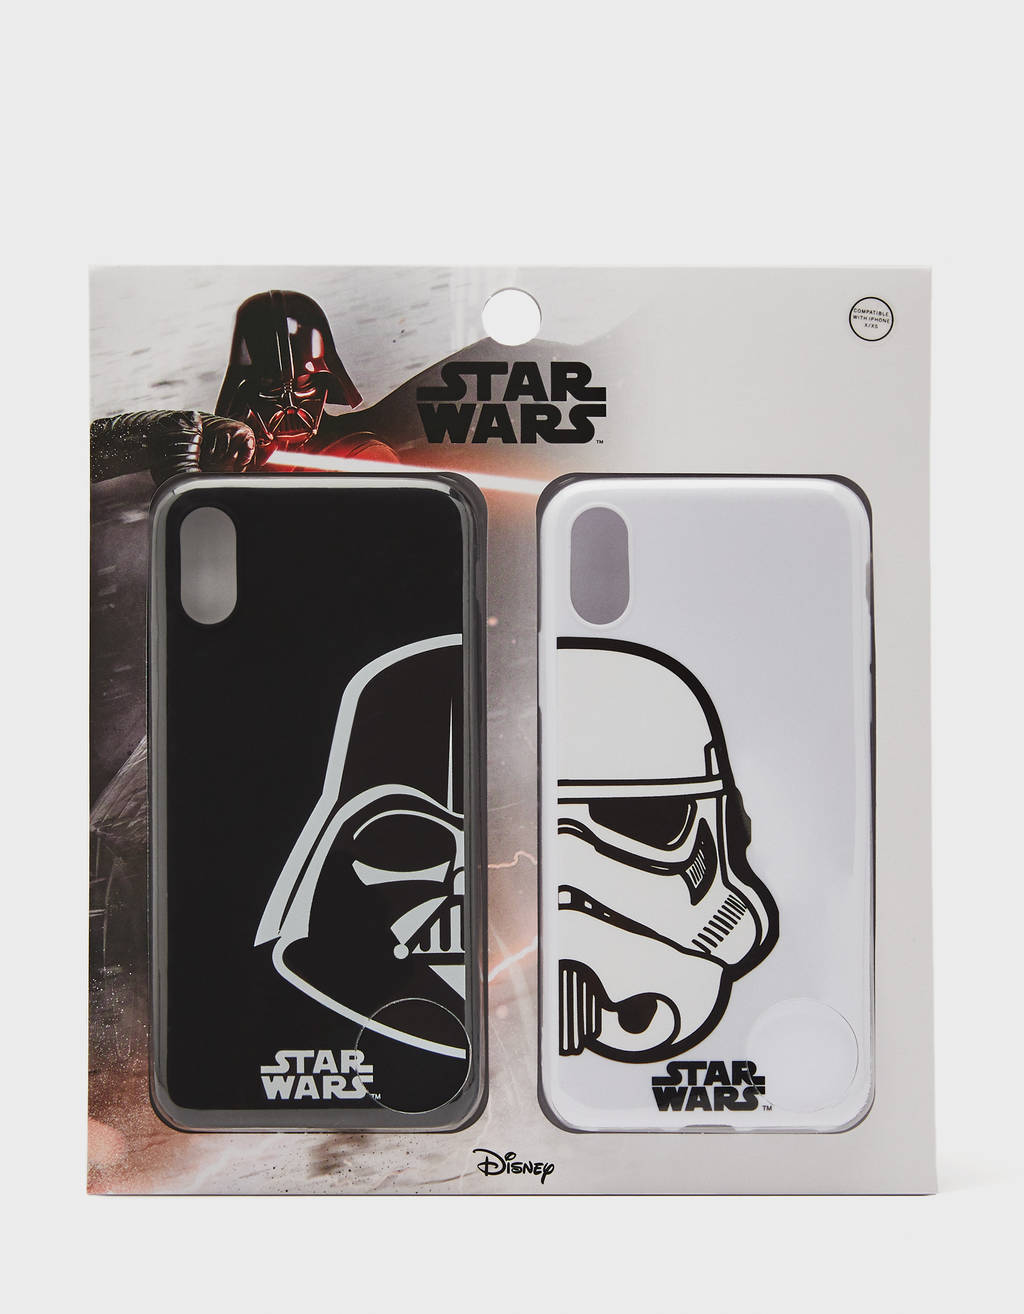 Set maski Star Wars za iPhone X/XR